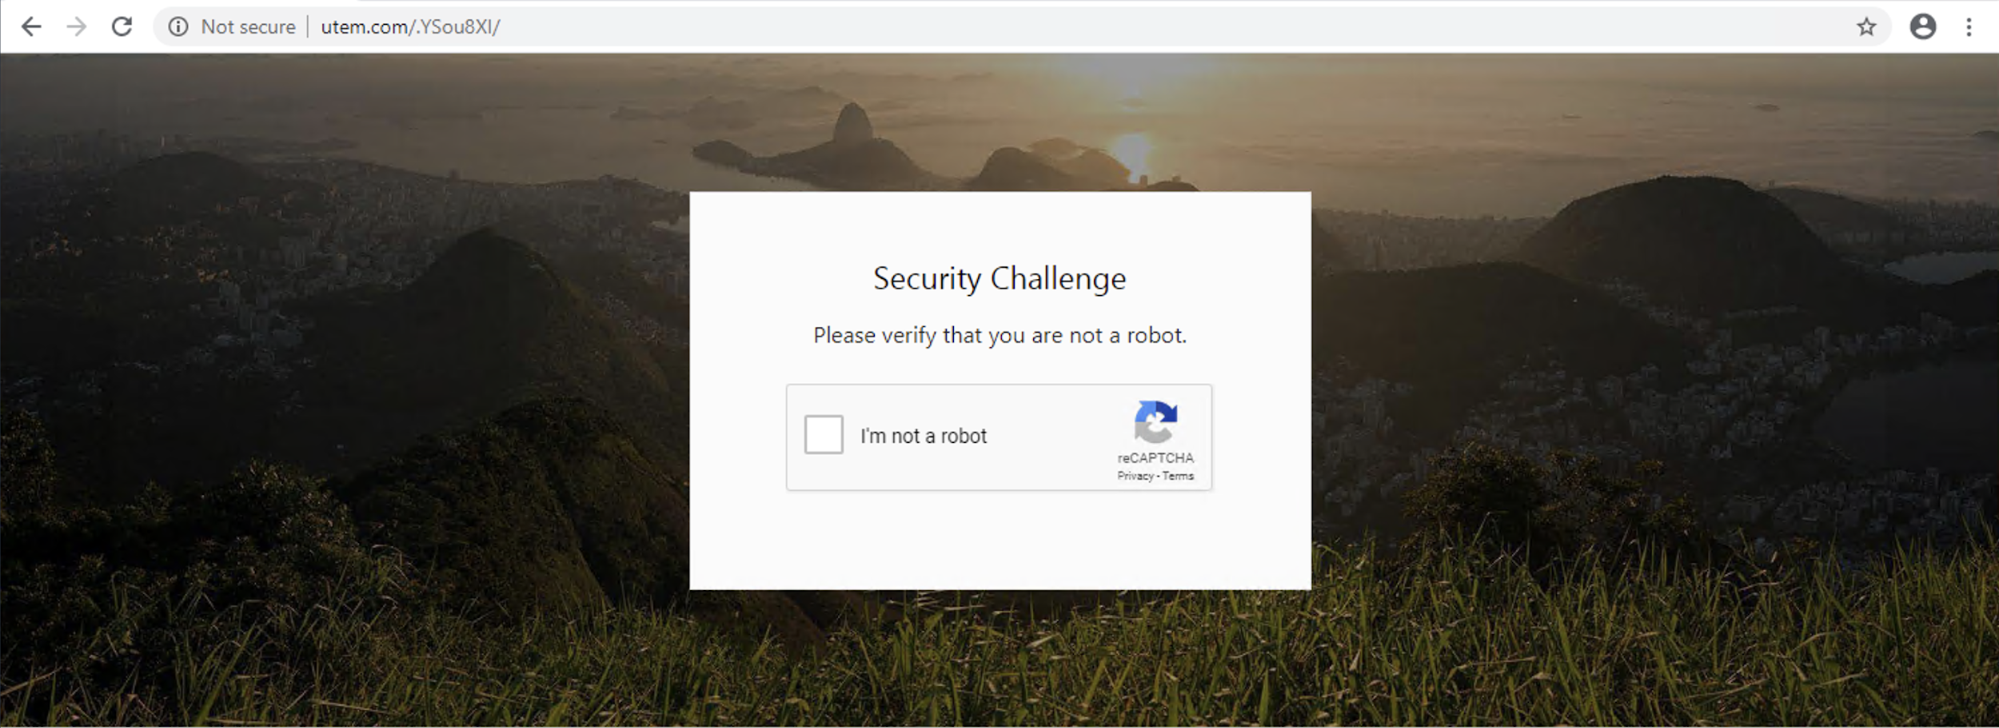 A long-running phishing campaign uses the following CAPTCHA-protected phishing page. Users see the challenge shown when they visit the page.